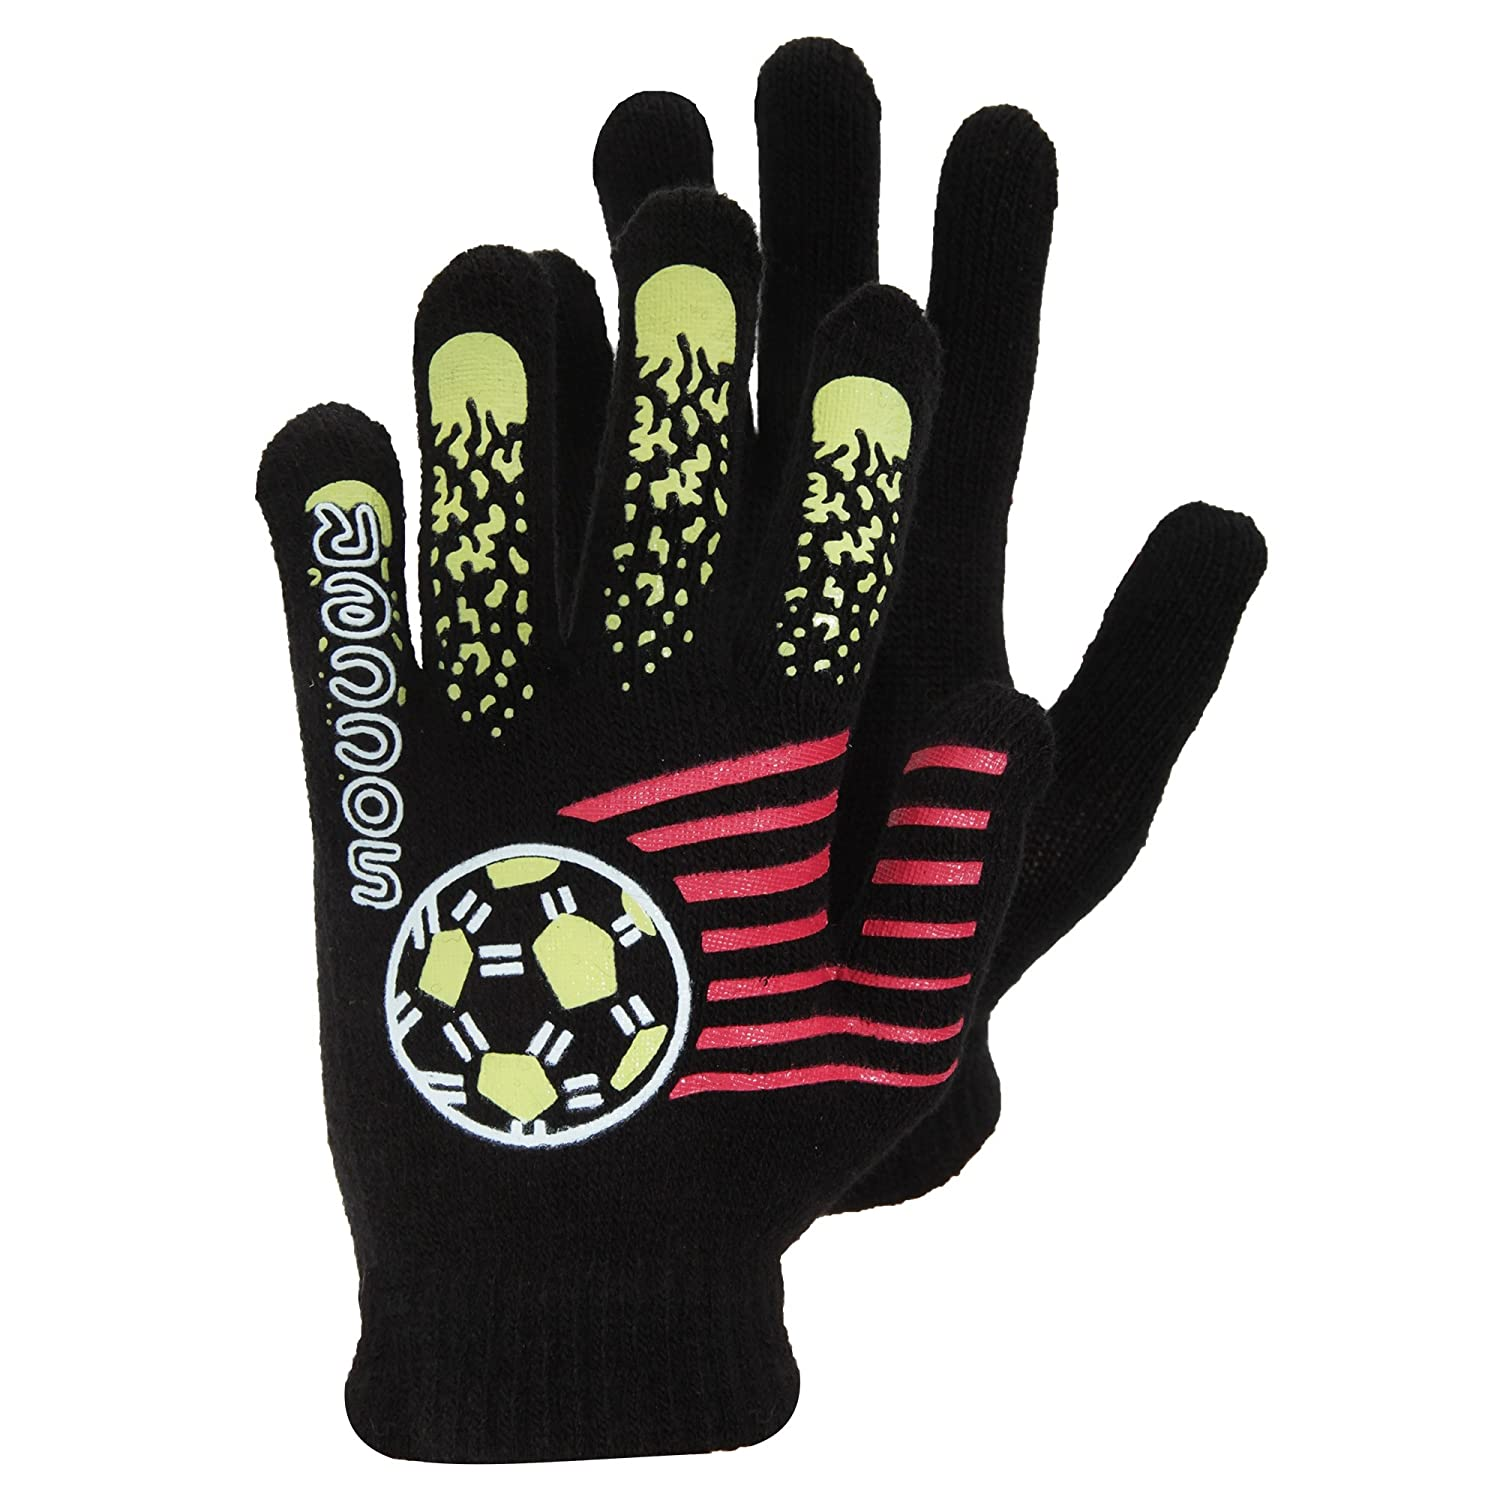 Boys Black Winter Magic Gloves With Rubber Print (Up to 12 years) (Design 4) Universal Textiles UTGL475_3